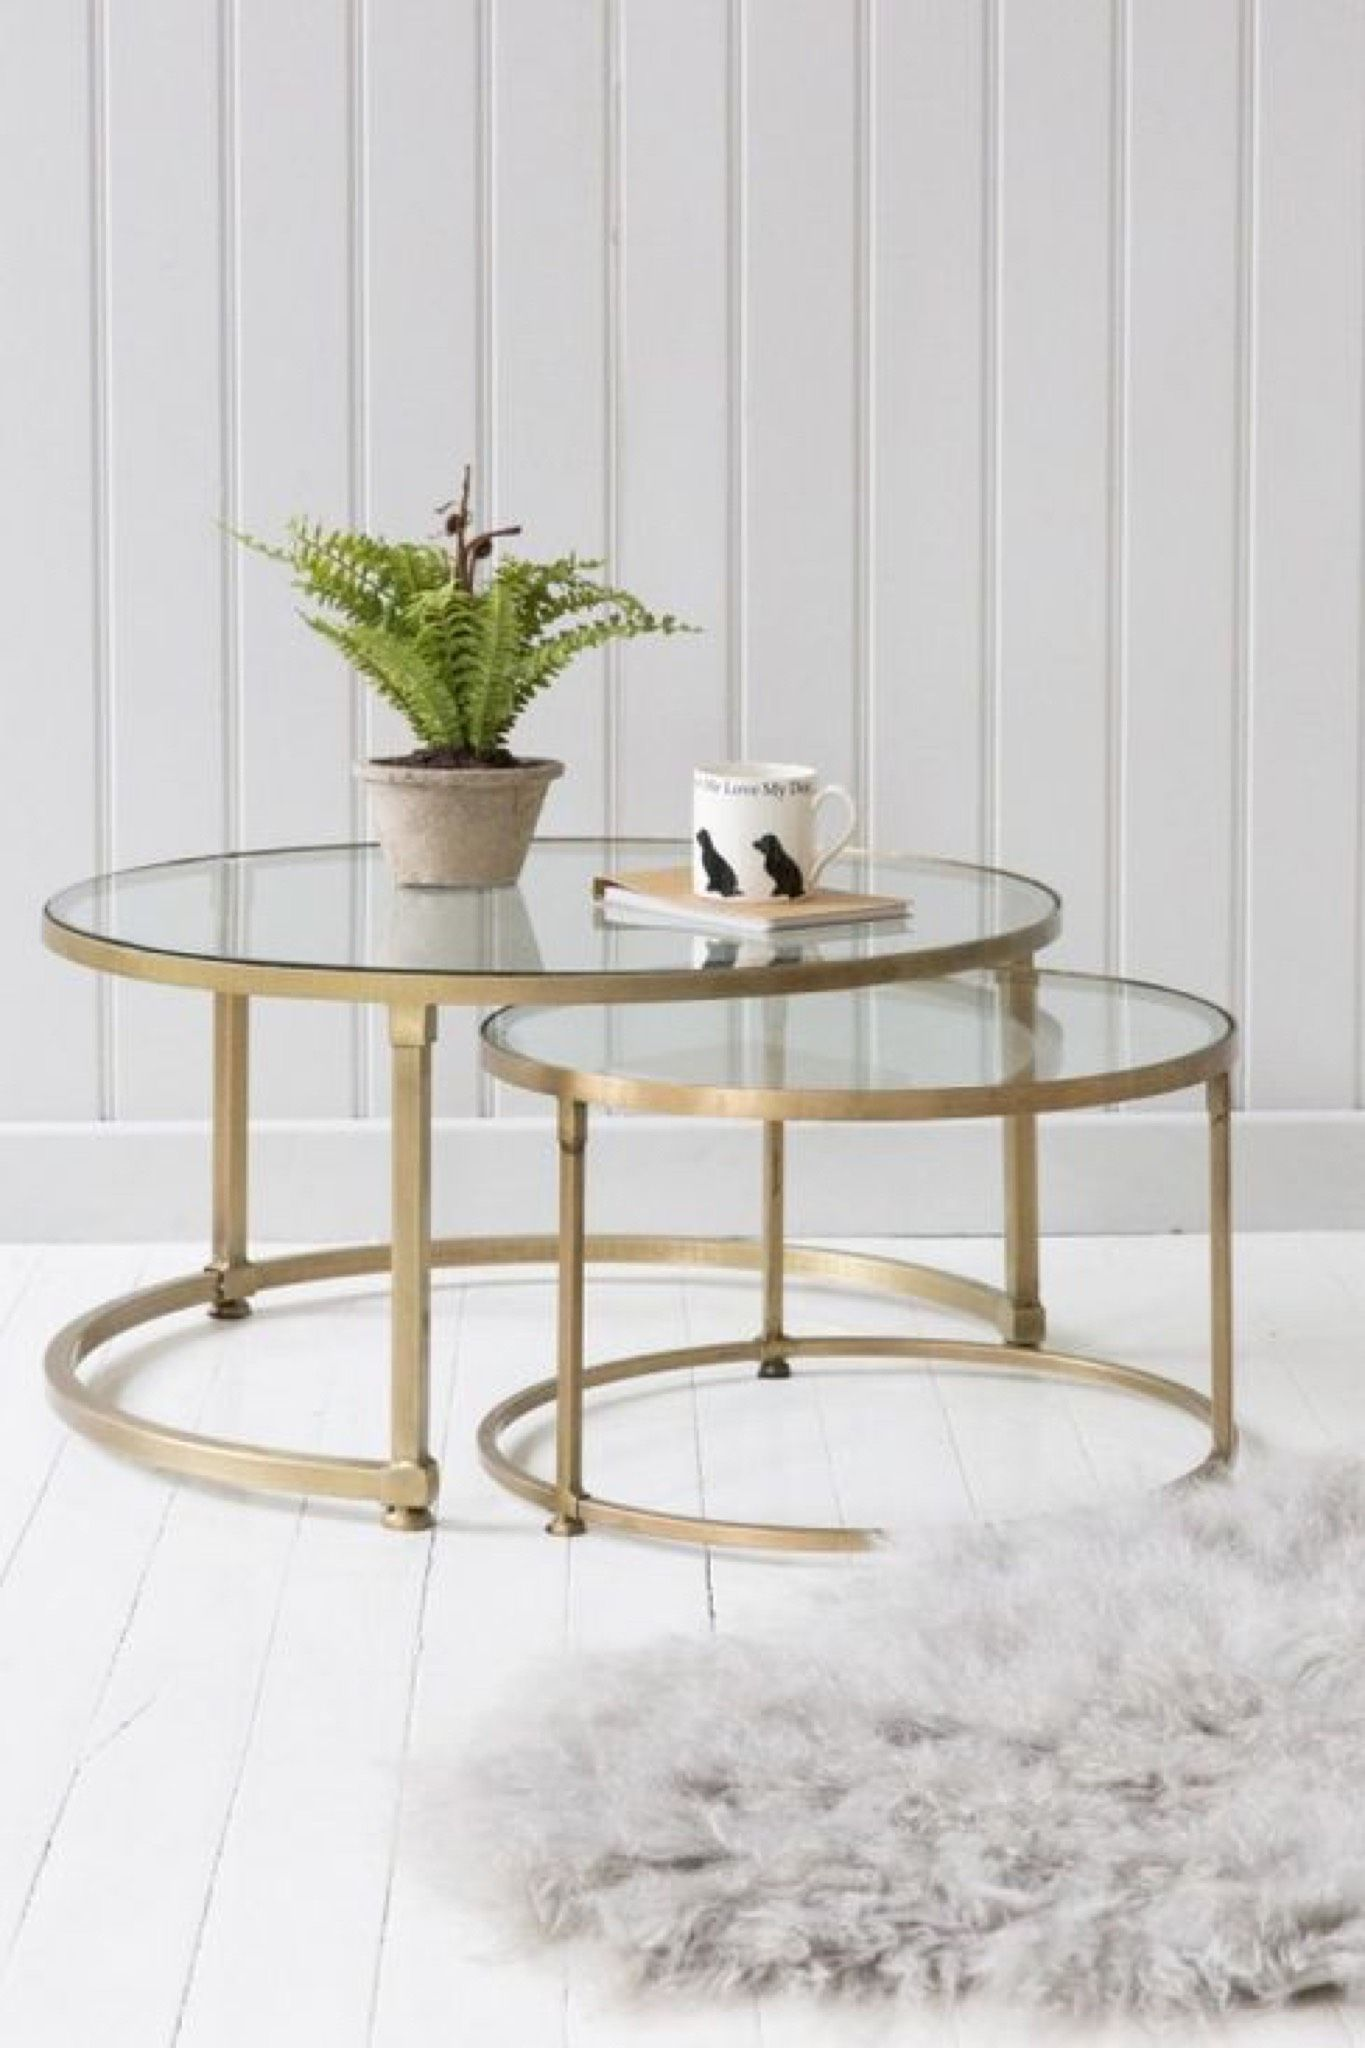 Explore Decor With Ania Glass Coffee Table Decor Round Glass Coffee Table Round Coffee Table Decor [ 2048 x 1365 Pixel ]